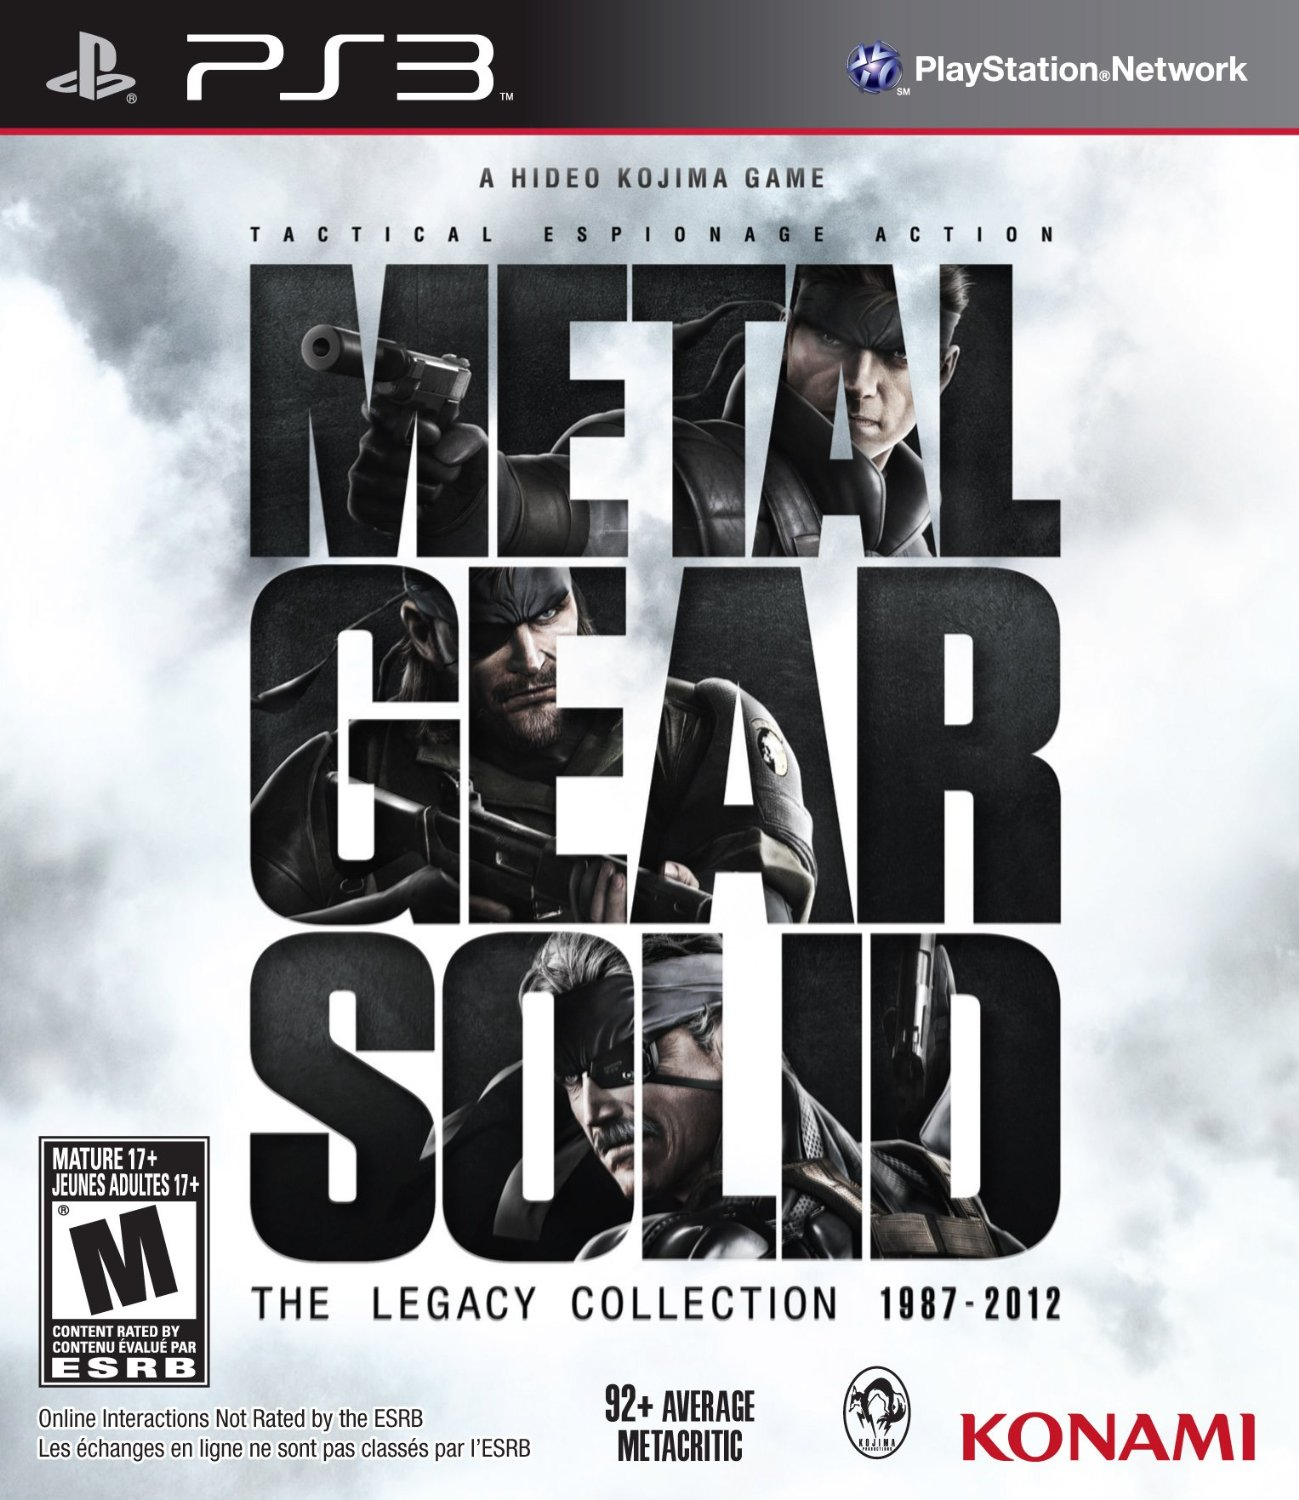 http://images1.wikia.nocookie.net/__cb20130518055242/metalgear/images/b/b9/Metal-Gear-Solid-The-Legacy-Collection.jpg